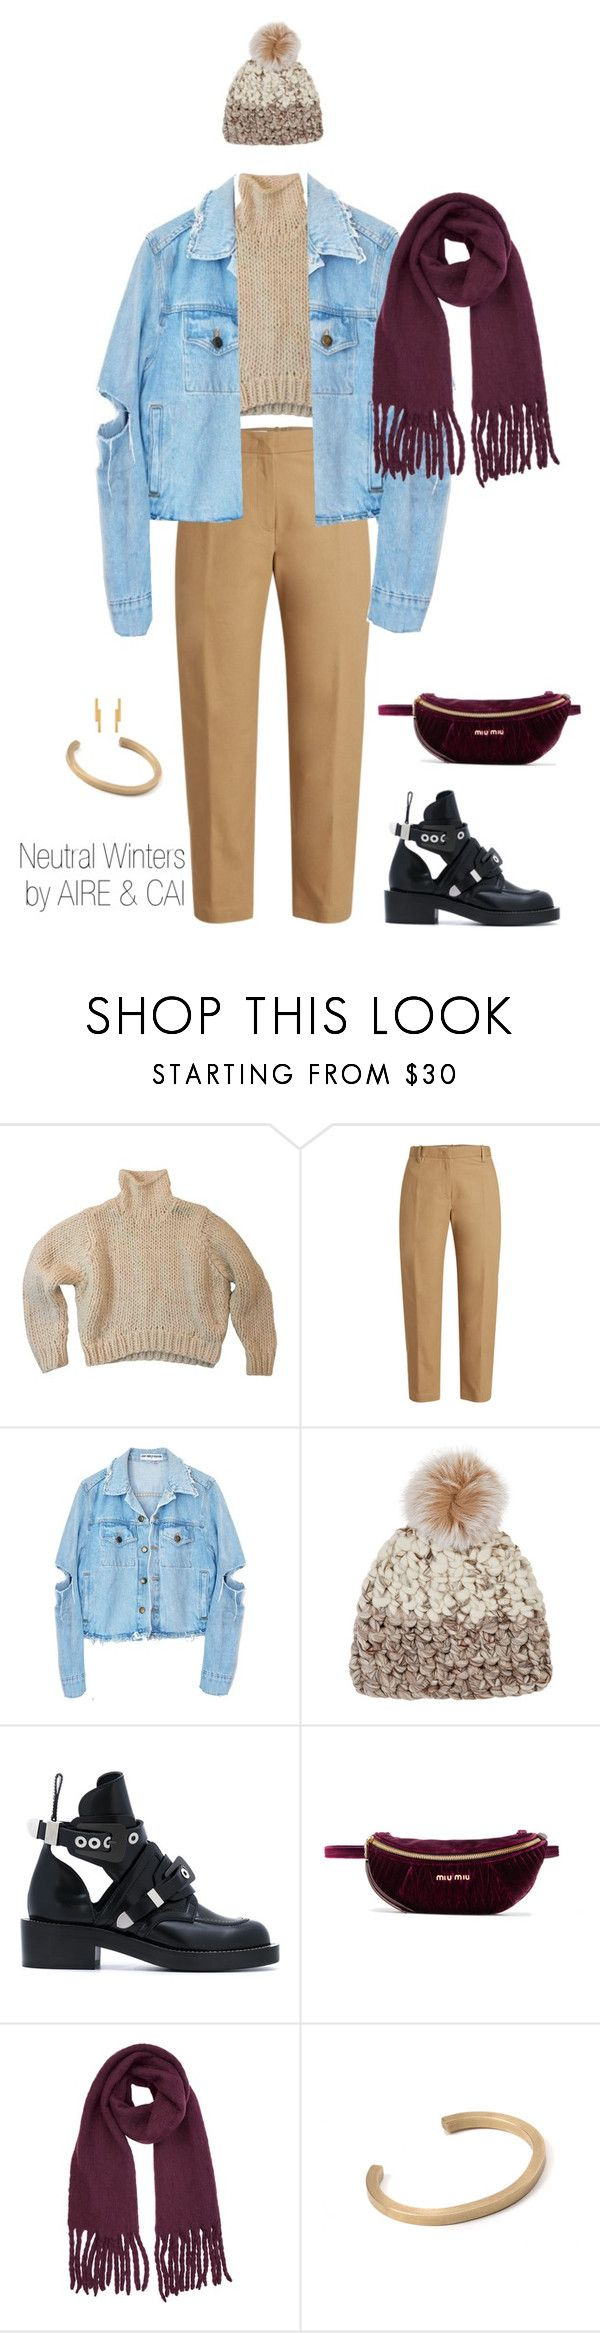 """""""Neutral Winters"""" by aireandcaimail on Polyvore featuring Jil Sander, Mischa Lampert, Balenciaga, Miu Miu, Warehouse and Carousel Jewels"""